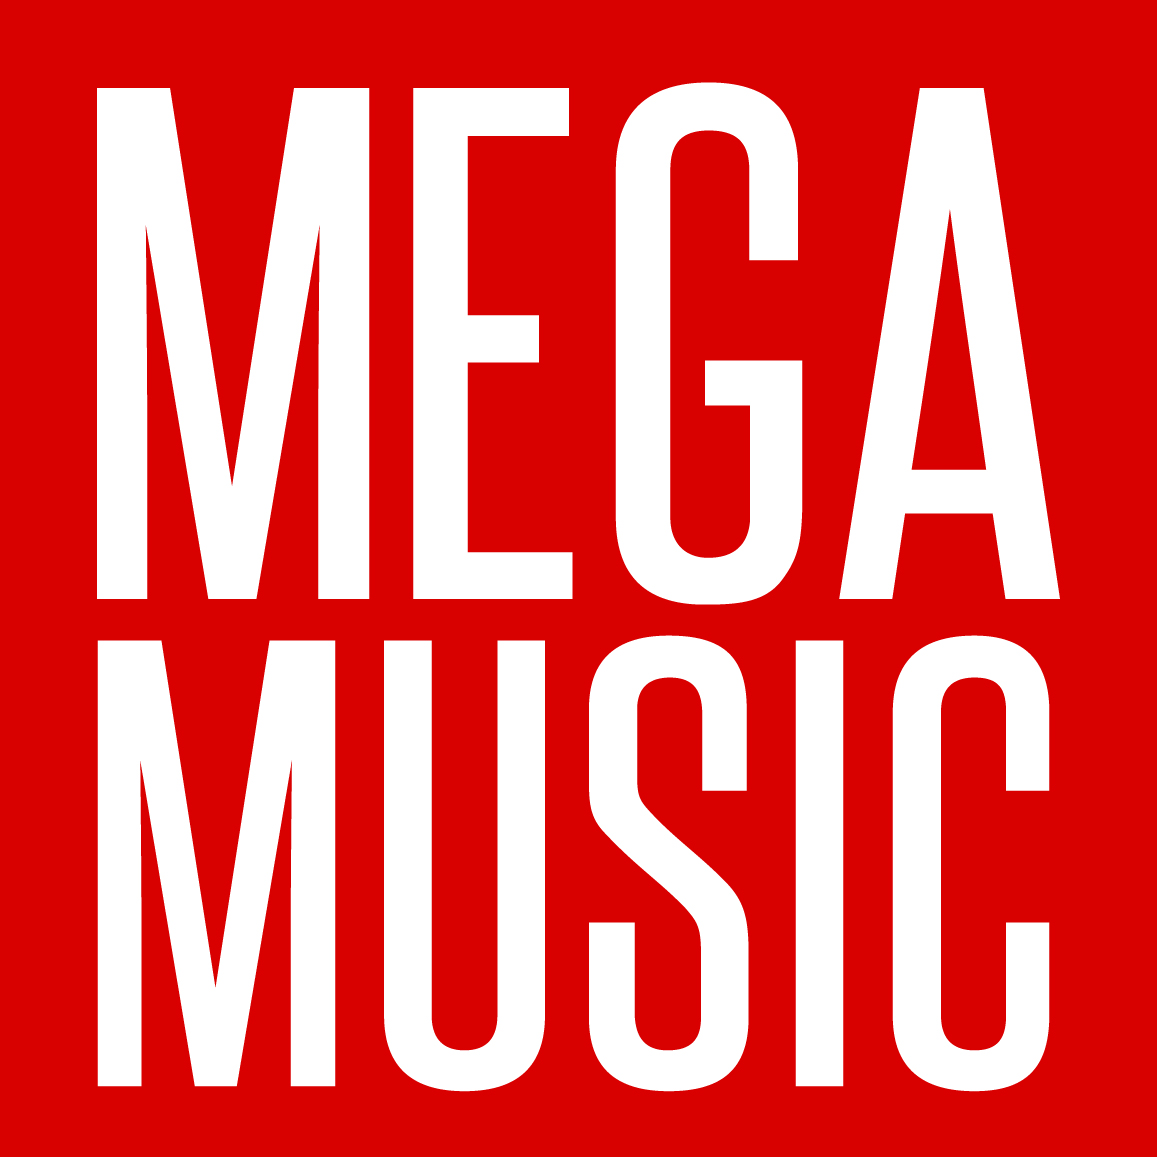 megamusic-logo-print-red.jpg